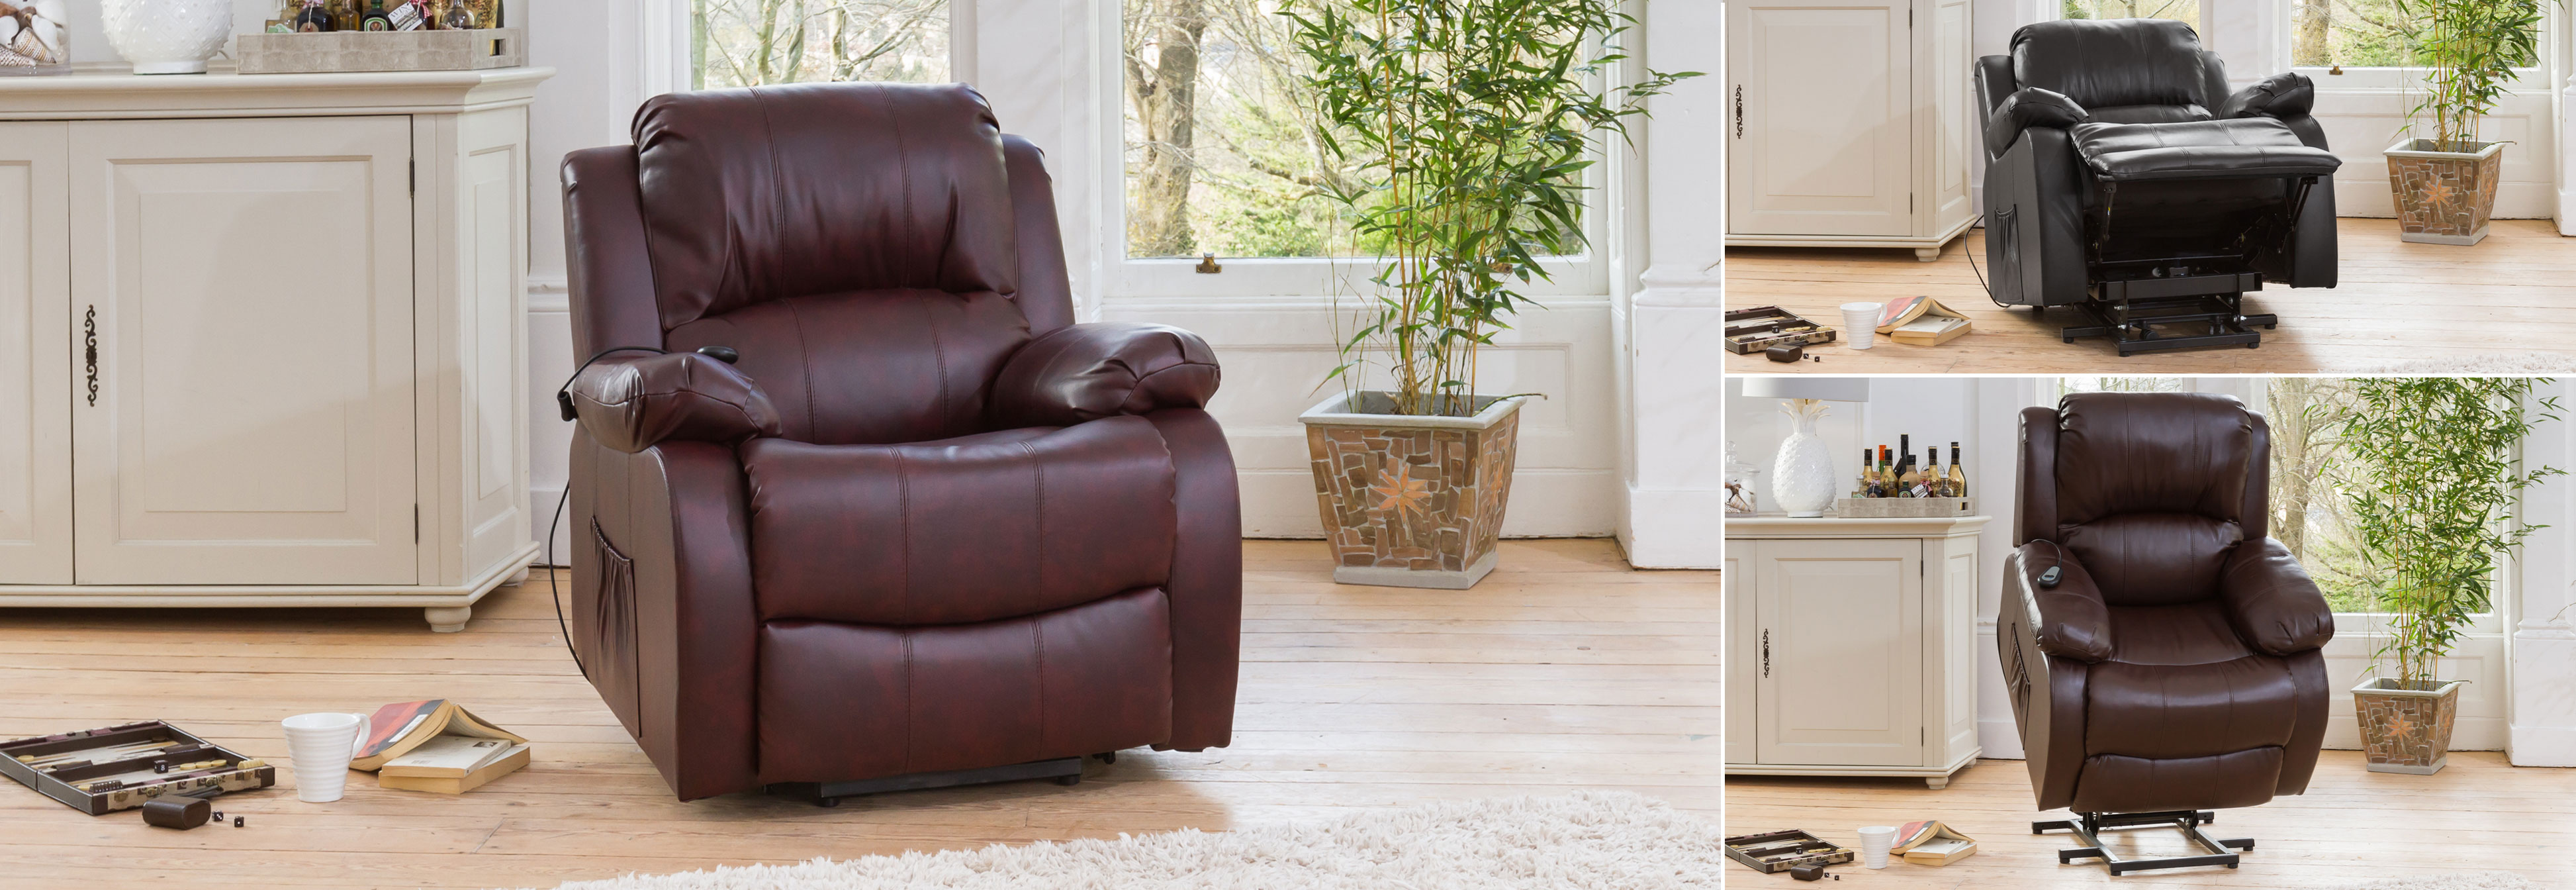 Broxbourne Riser Recliner With Massage And Heat Burgundy At The Sofa Company